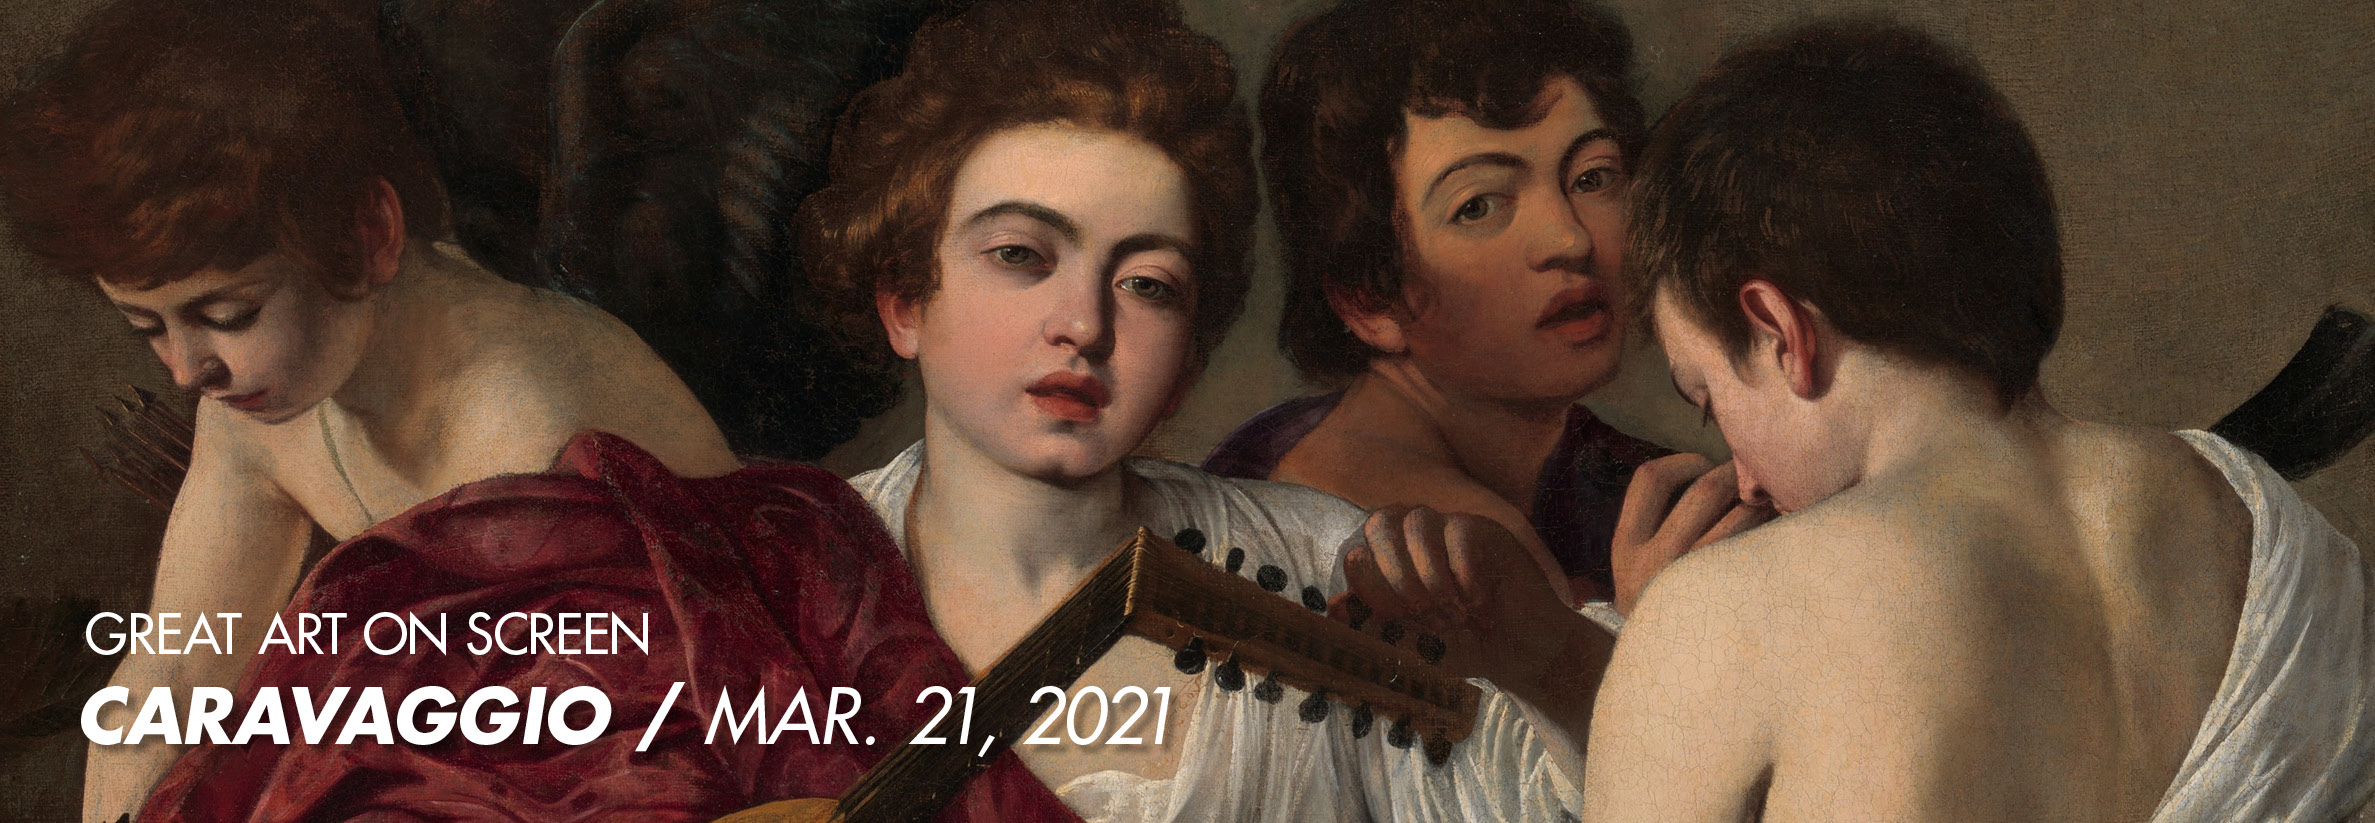 Great Art on Screen: Caravaggio, March 21, 2021 (Image: detail of Caravaggio's I Musici)